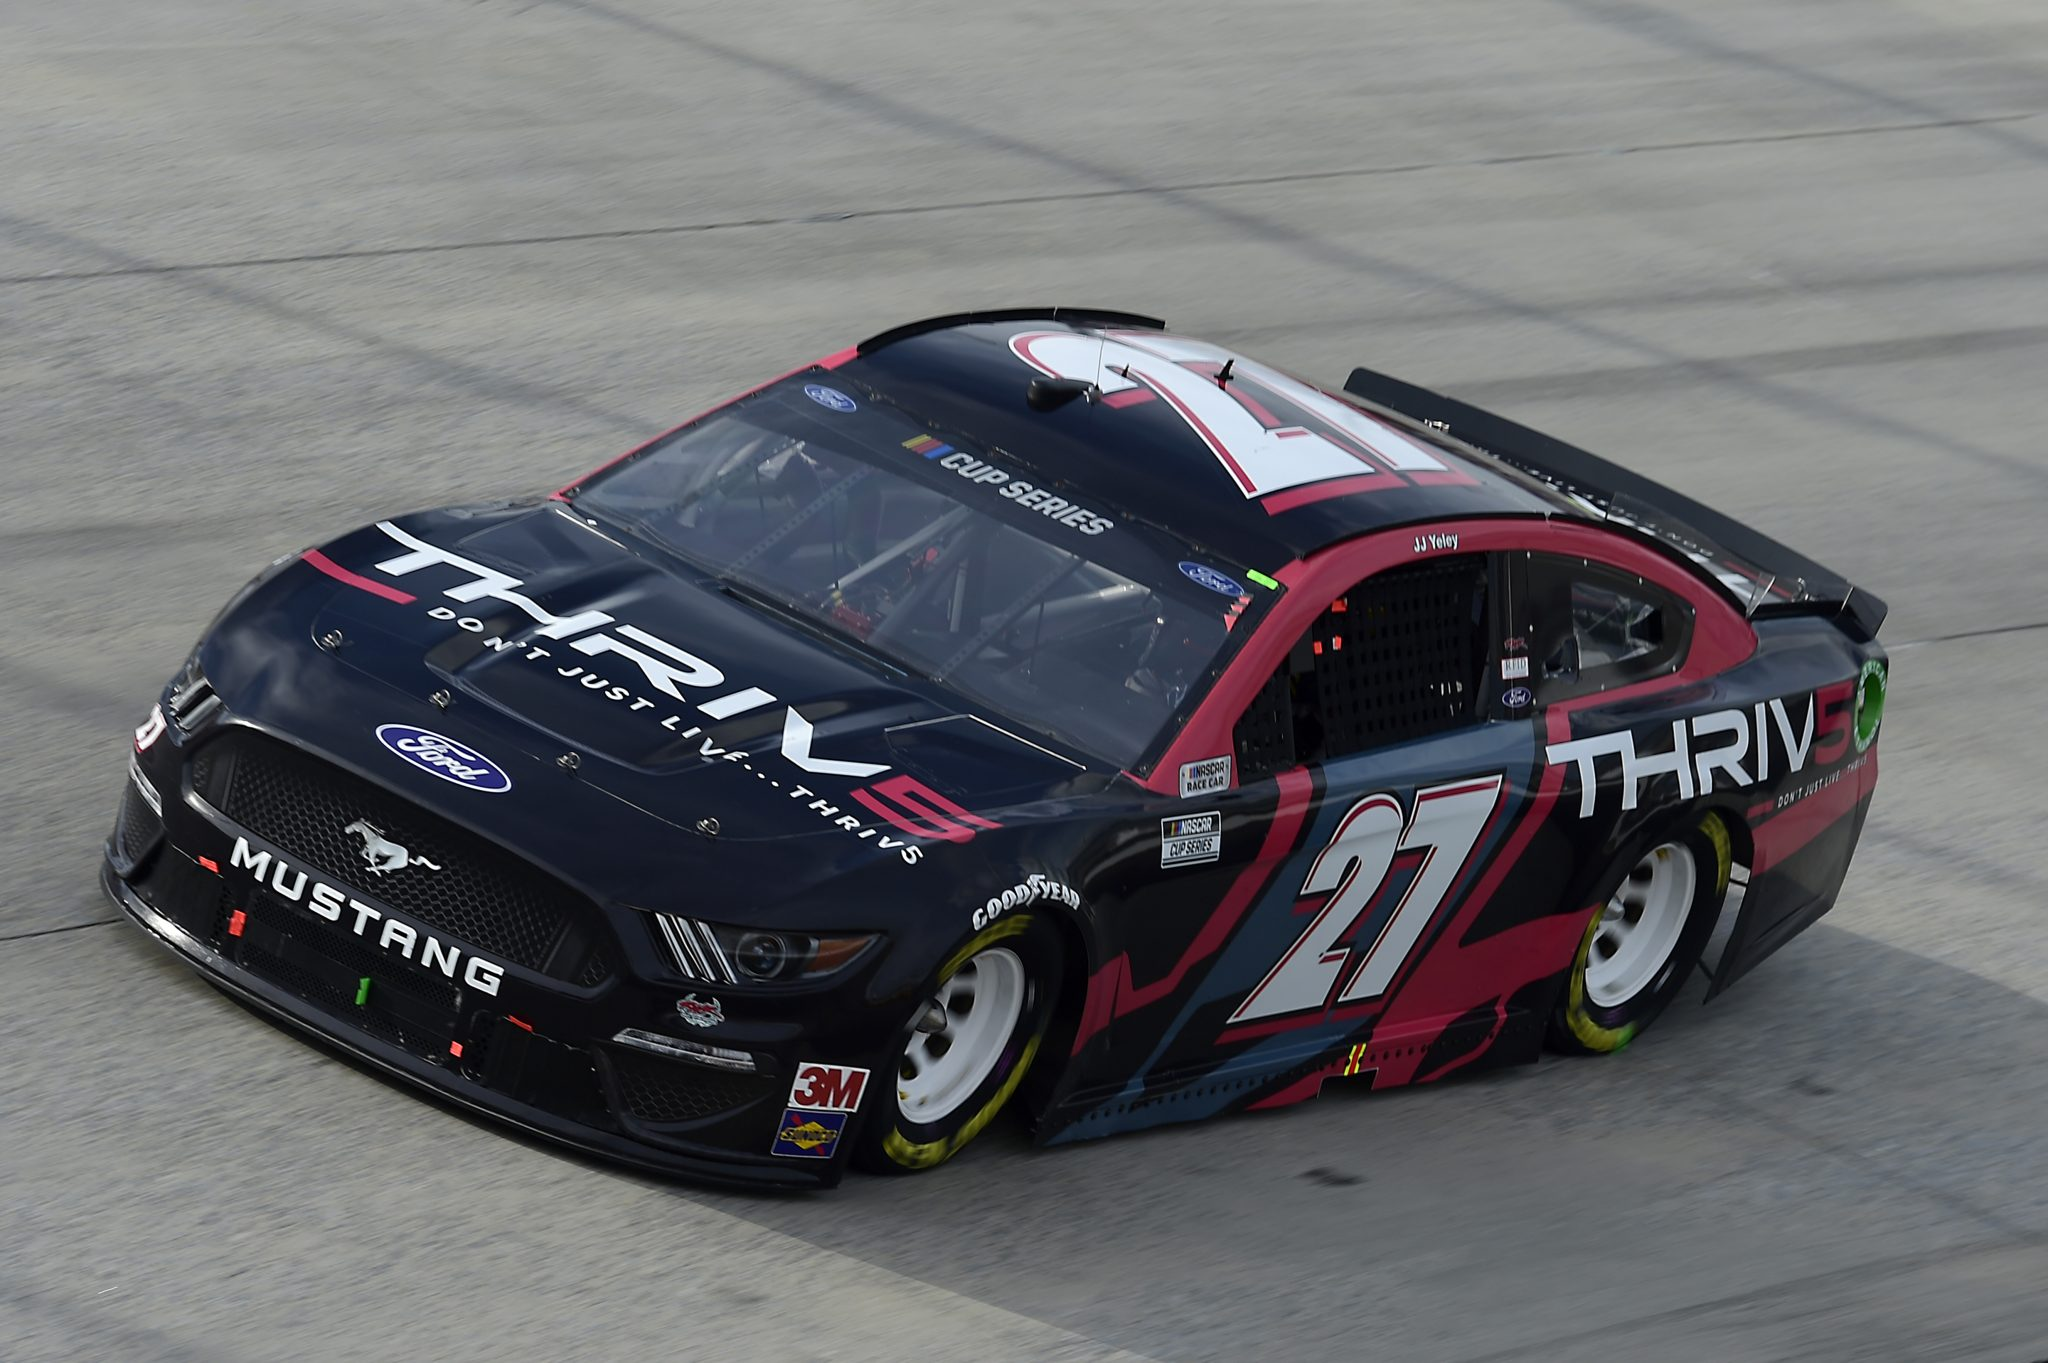 DOVER, DELAWARE - AUGUST 22: JJ Yeley, driver of the #27 Thriv5 Ford, drives drives during the NASCAR Cup Series Drydene 311 at Dover International Speedway on August 22, 2020 in Dover, Delaware. (Photo by Jared C. Tilton/Getty Images) | Getty Images